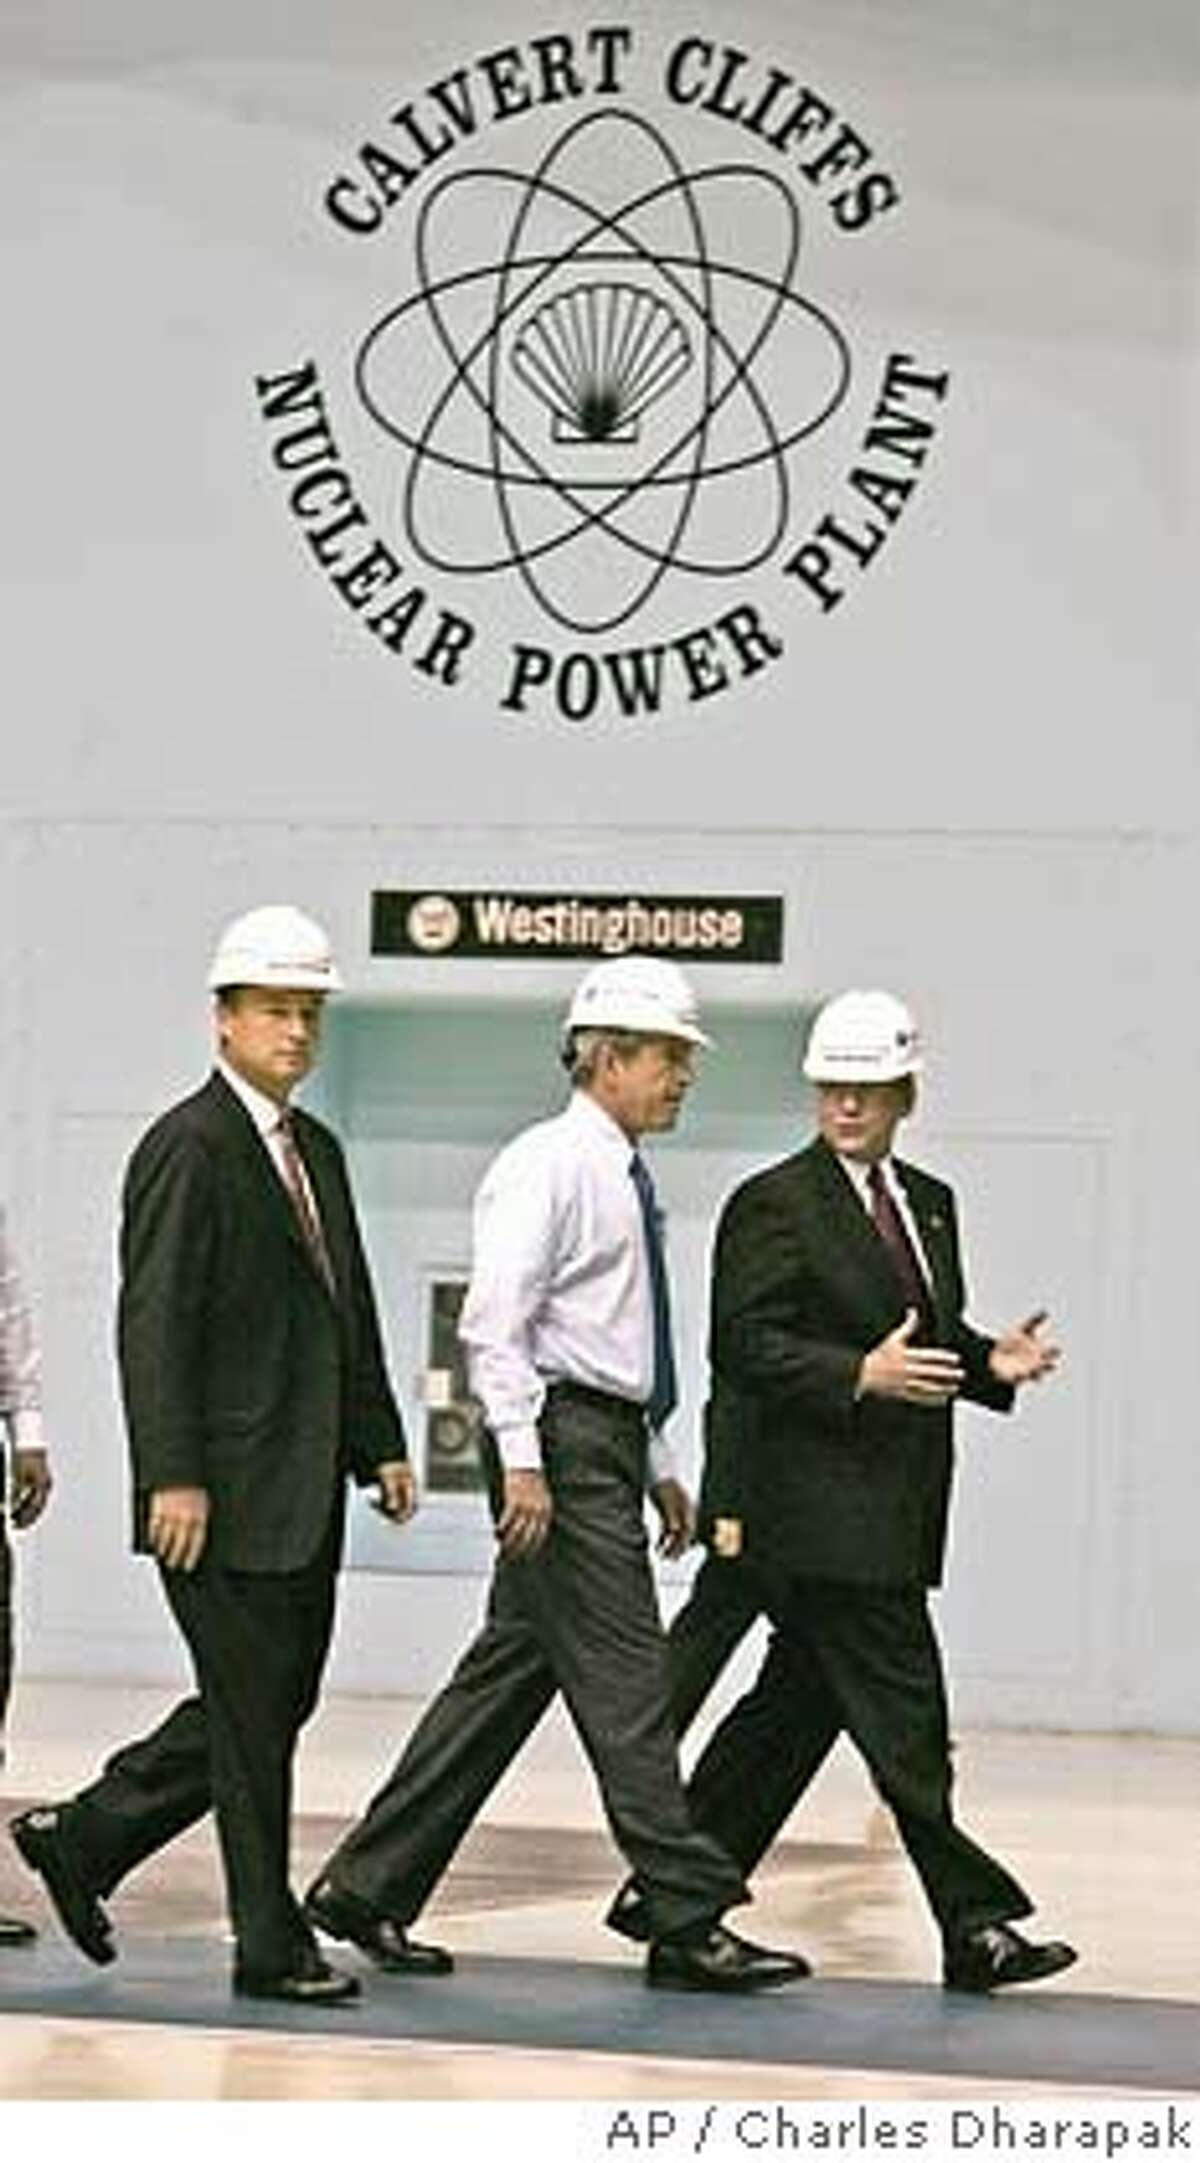 President Bush, center, tours the turbine room of Calvert Cliffs Nuclear Power Plant with Mike Wallace, President of Constellation Generation, right, and Mayo Shattuck, chairman, president, and CEO of Constellation Energy in Lusby, Md., Wednesday, June 22, 2005. President Bush later spoke about energy and economic security at the facility. (AP Photo/Charles Dharapak)